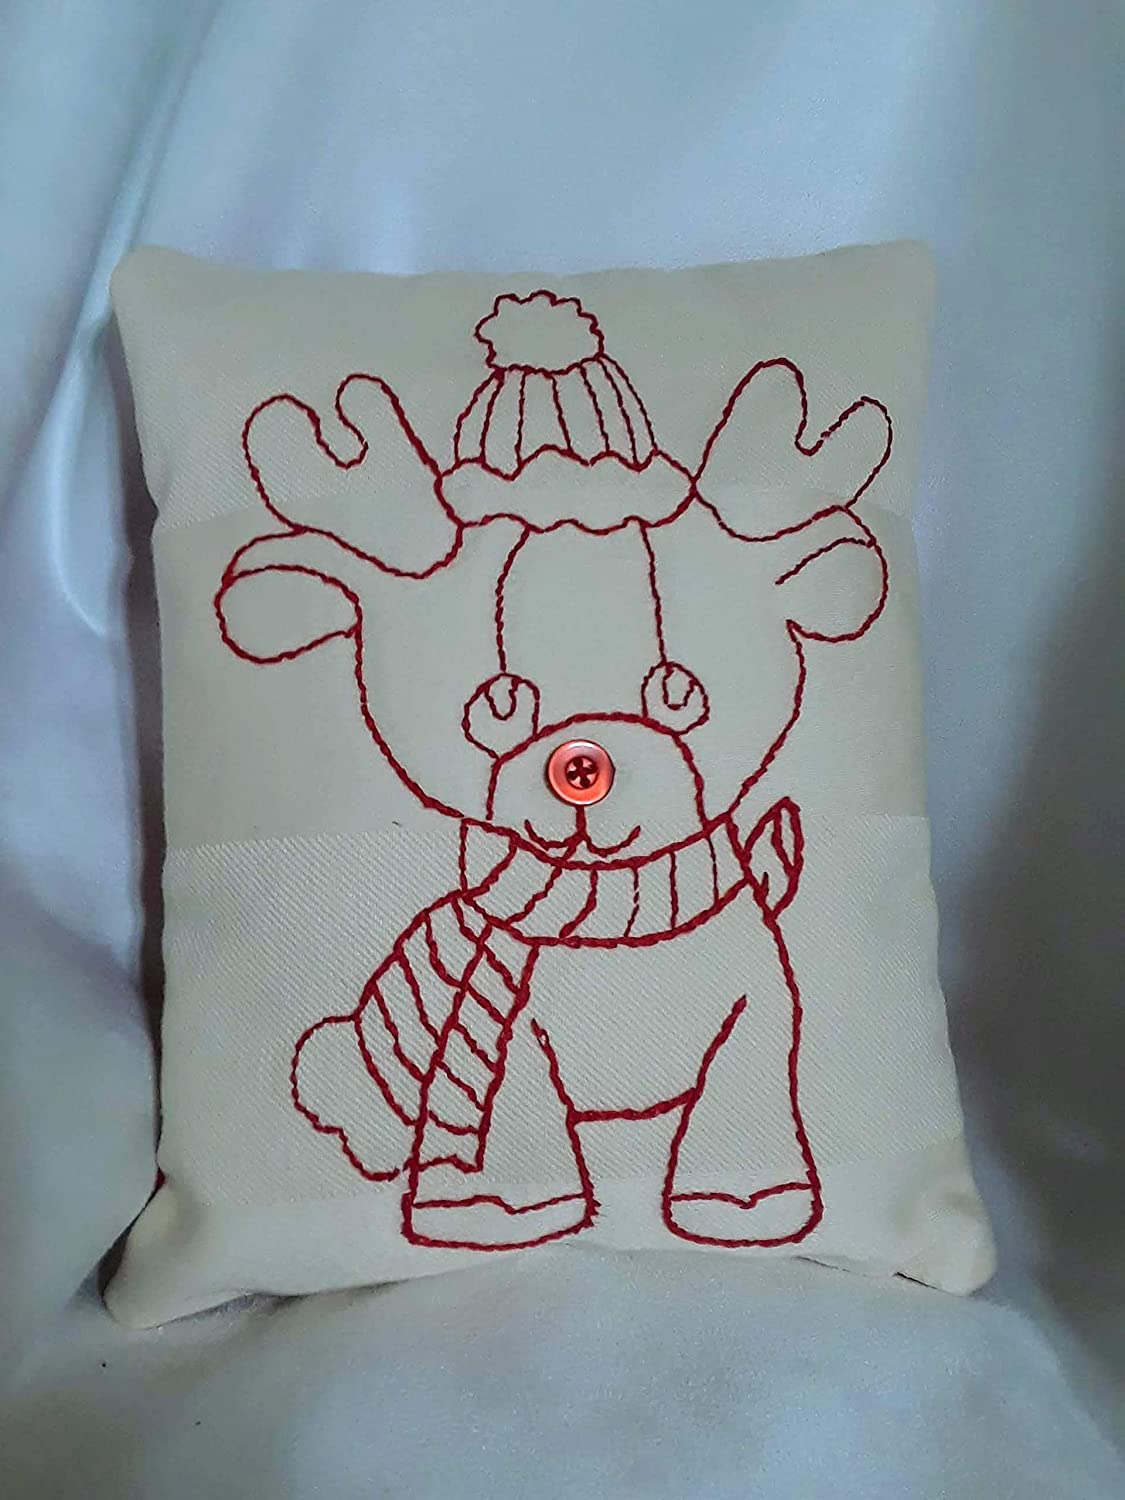 Amazon.com: Vintage Style Redwork Embroidery Miniature Pillow Cushion with  Rudolph the Red Nose Reindeer: Handmade